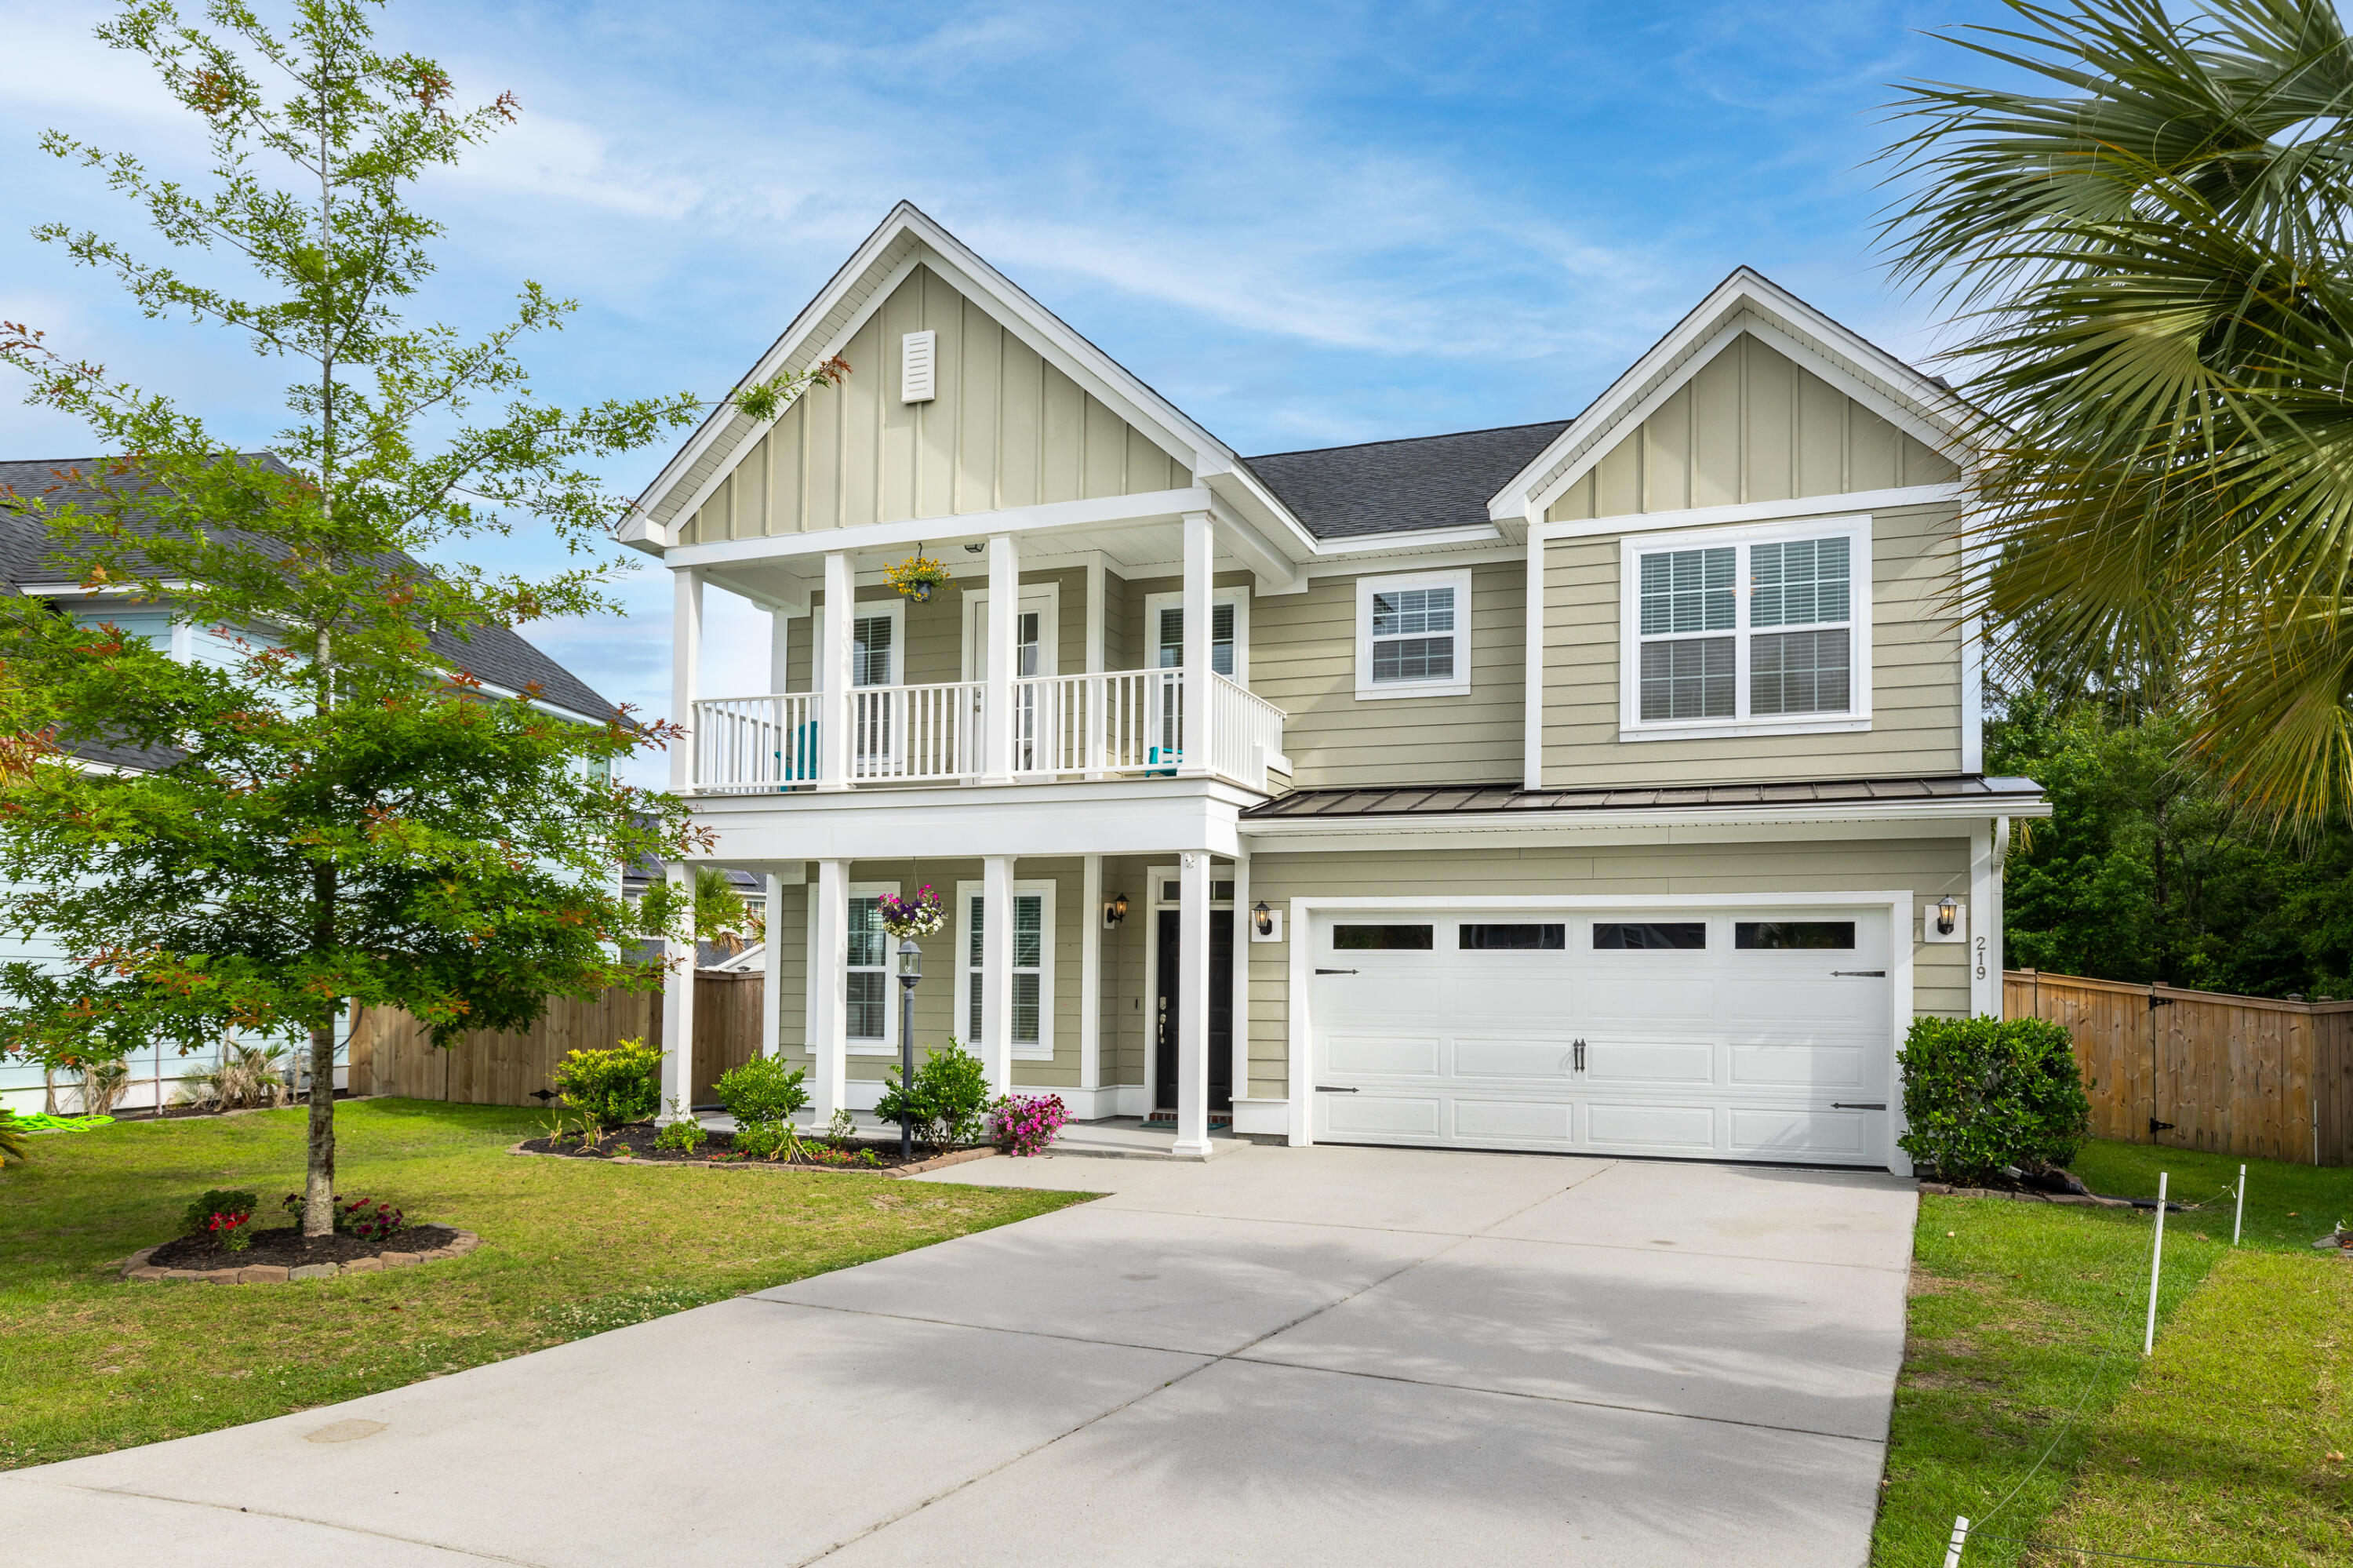 219 Carriage Hill Place Wando, Sc 29492